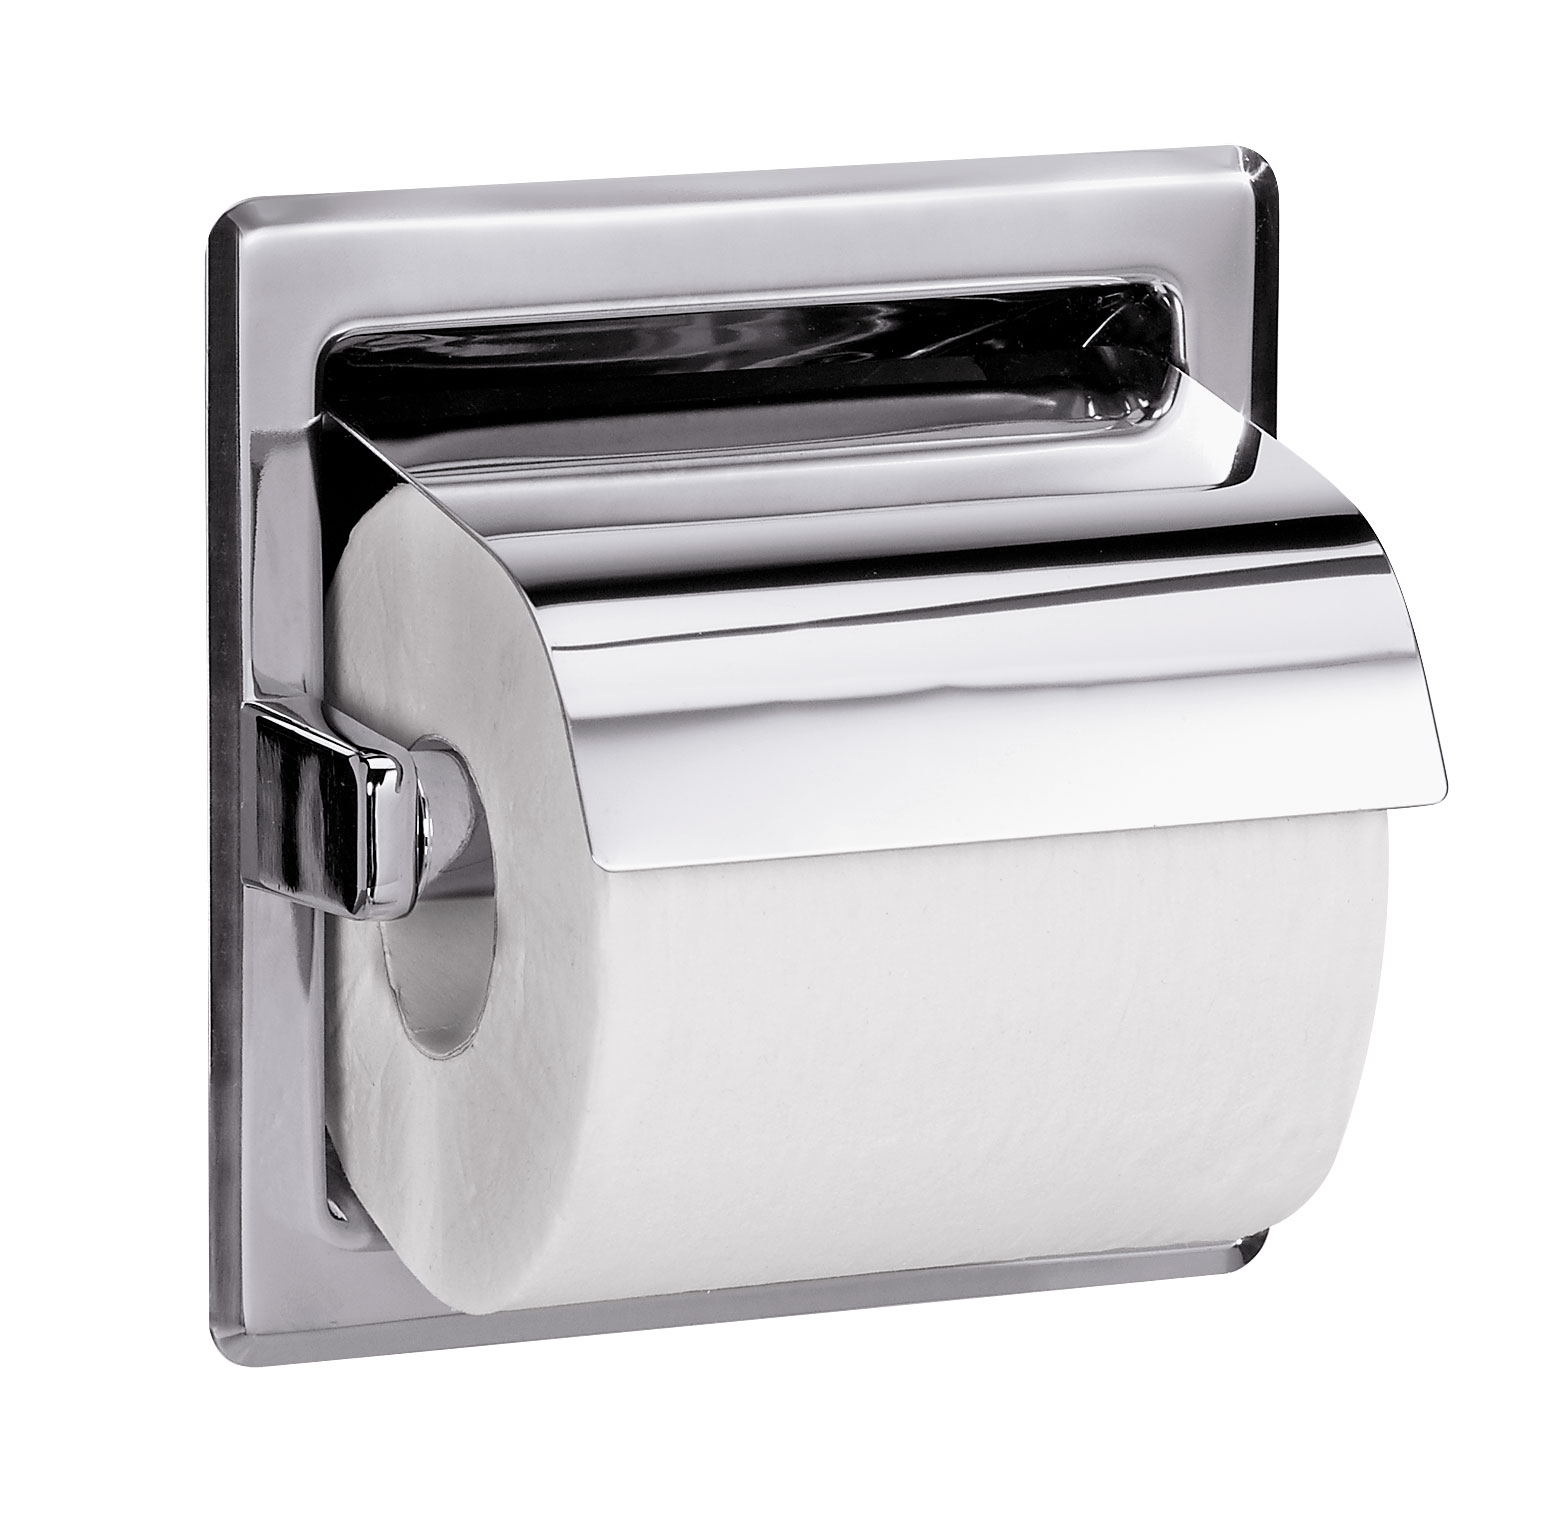 Bradley 5103 Recessed Single Roll Toilet Paper Dispenser With Hood